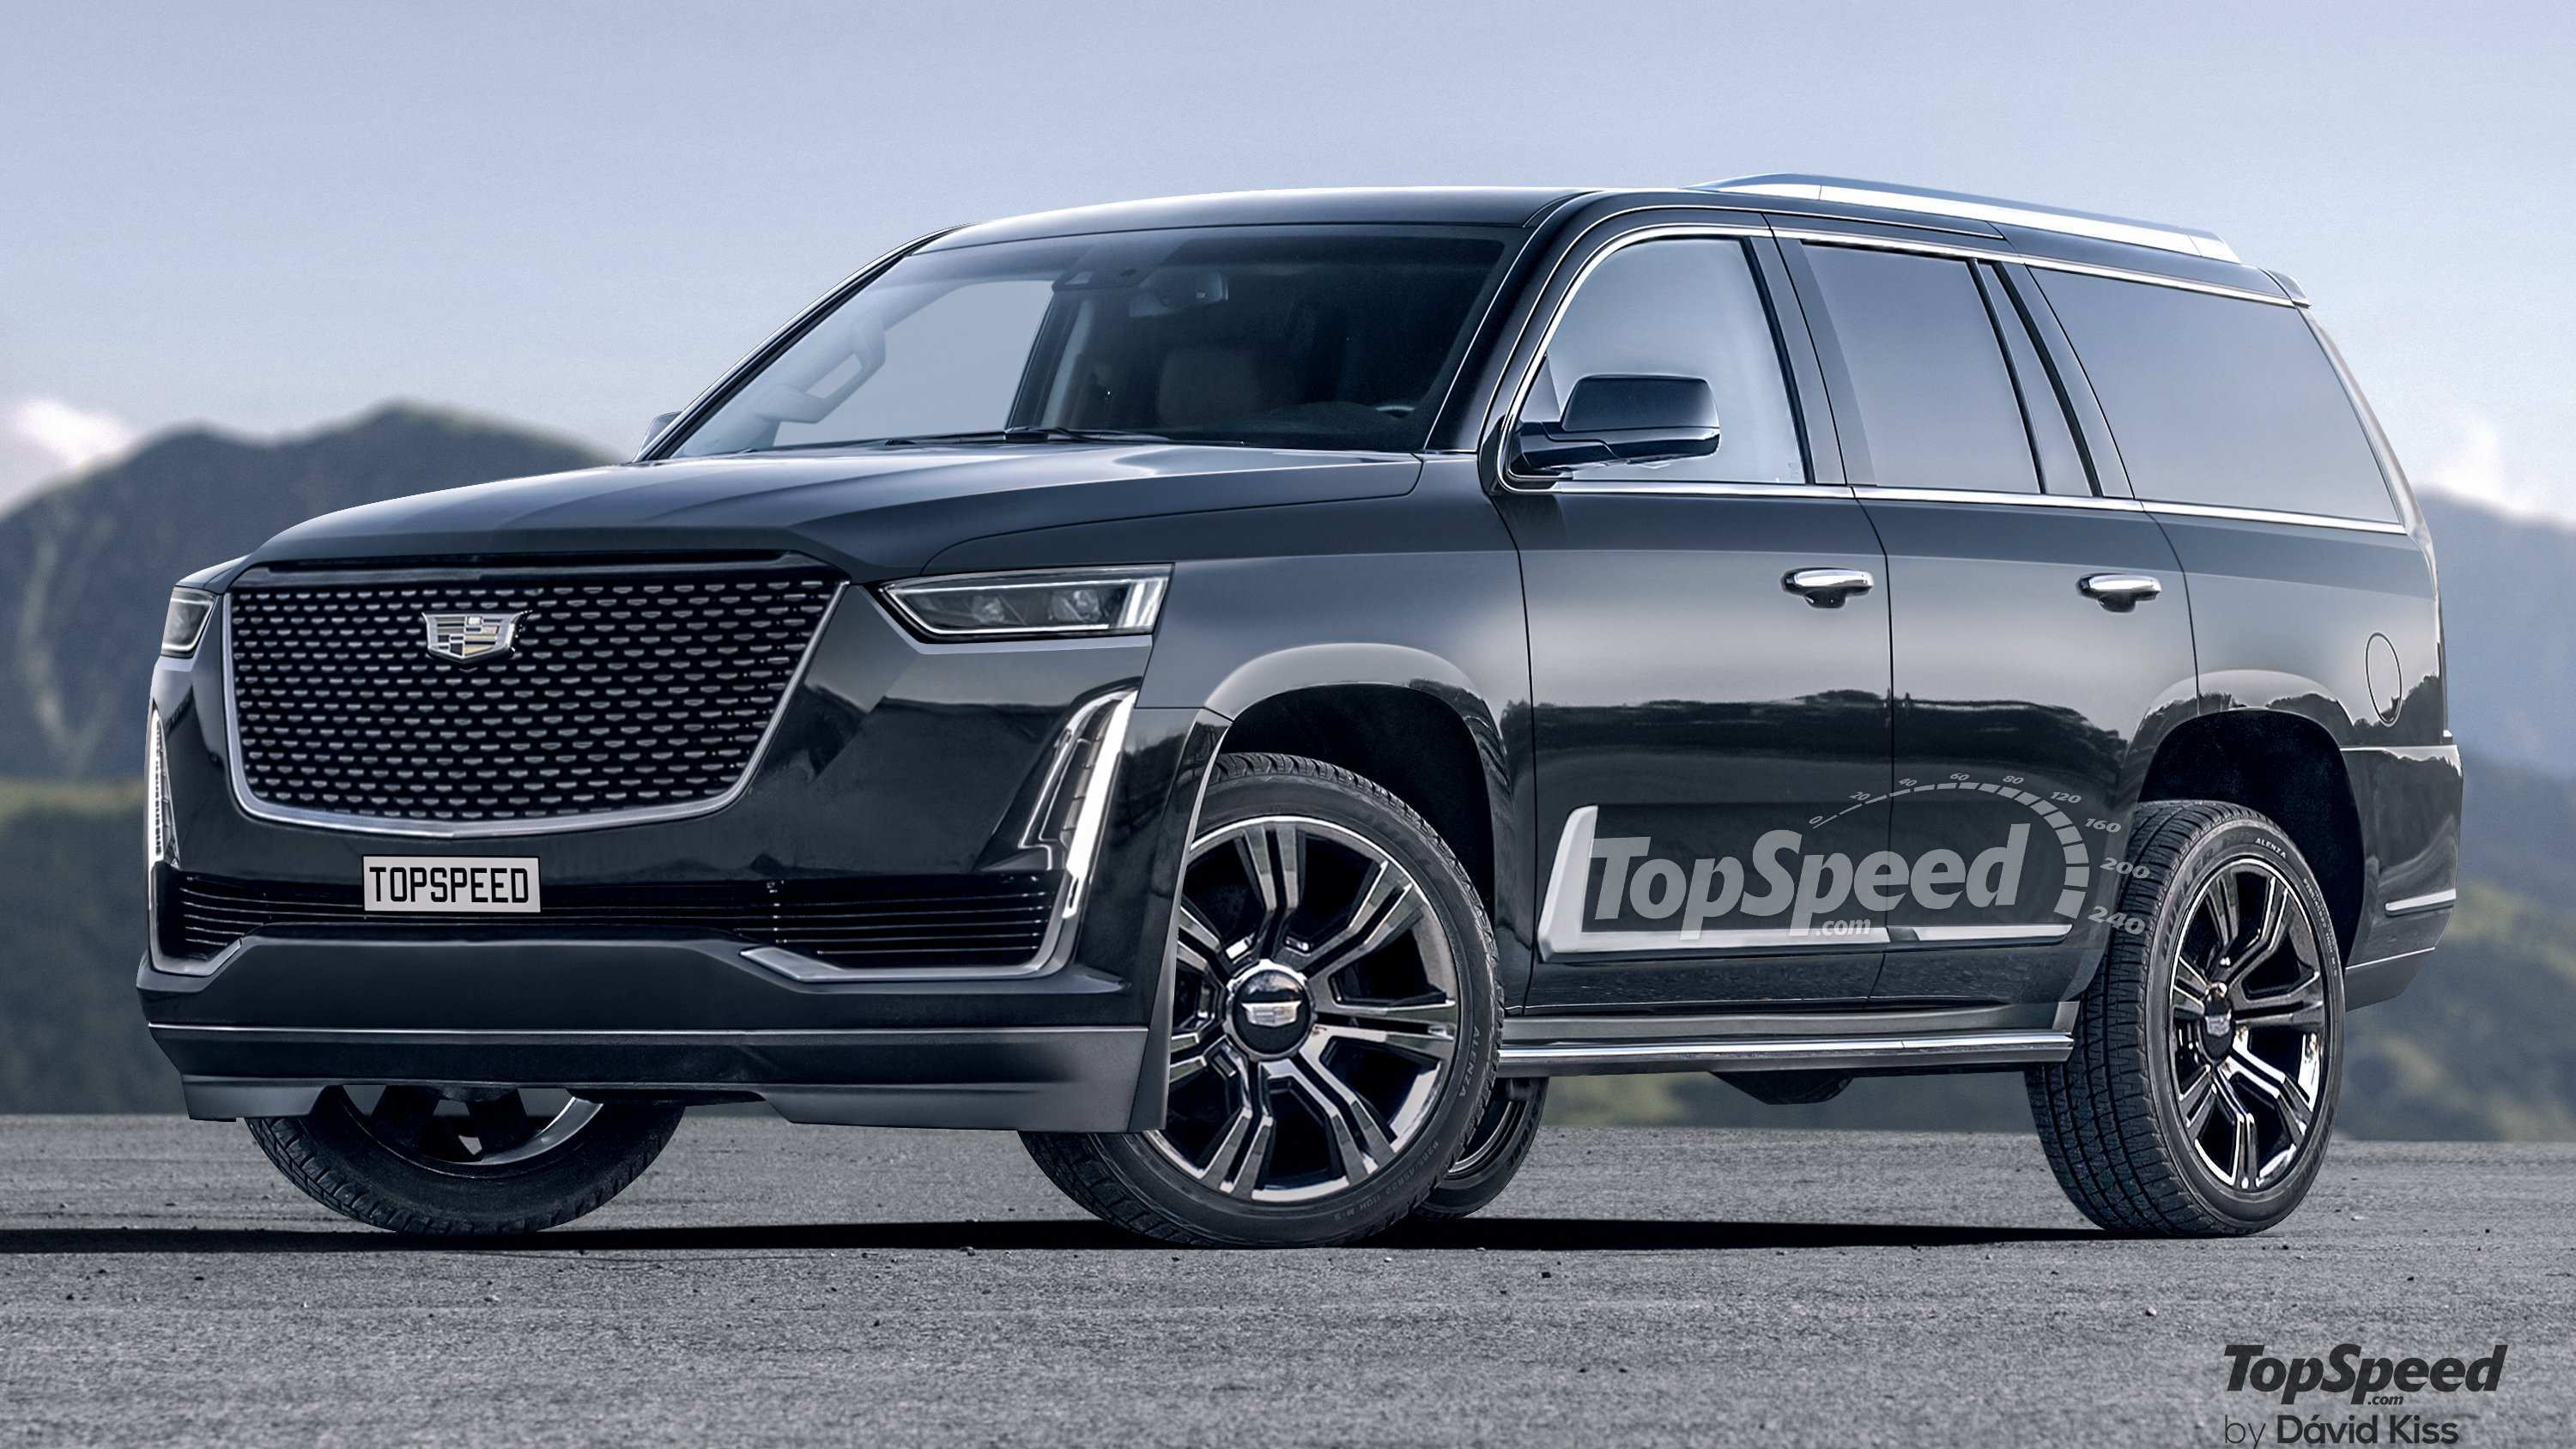 33 The Best When Will The 2020 Cadillac Escalade Be Released Ratings